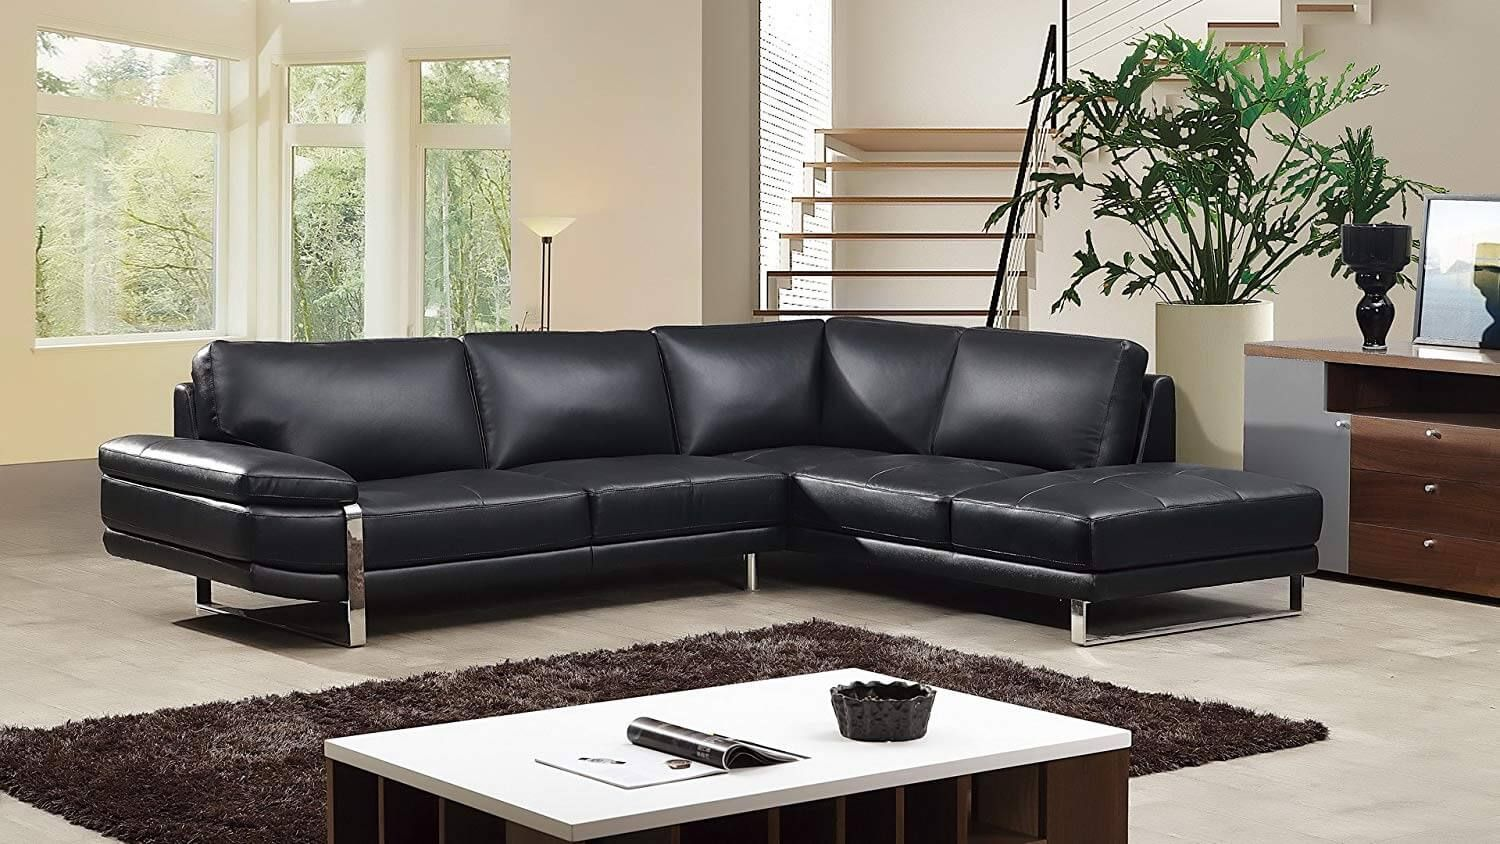 However, with a little ingenuity, you could have custom leather furniture in your home for a fraction of the cost. Embrace Your Home With Best Leather Sofa Brands   Leather ...